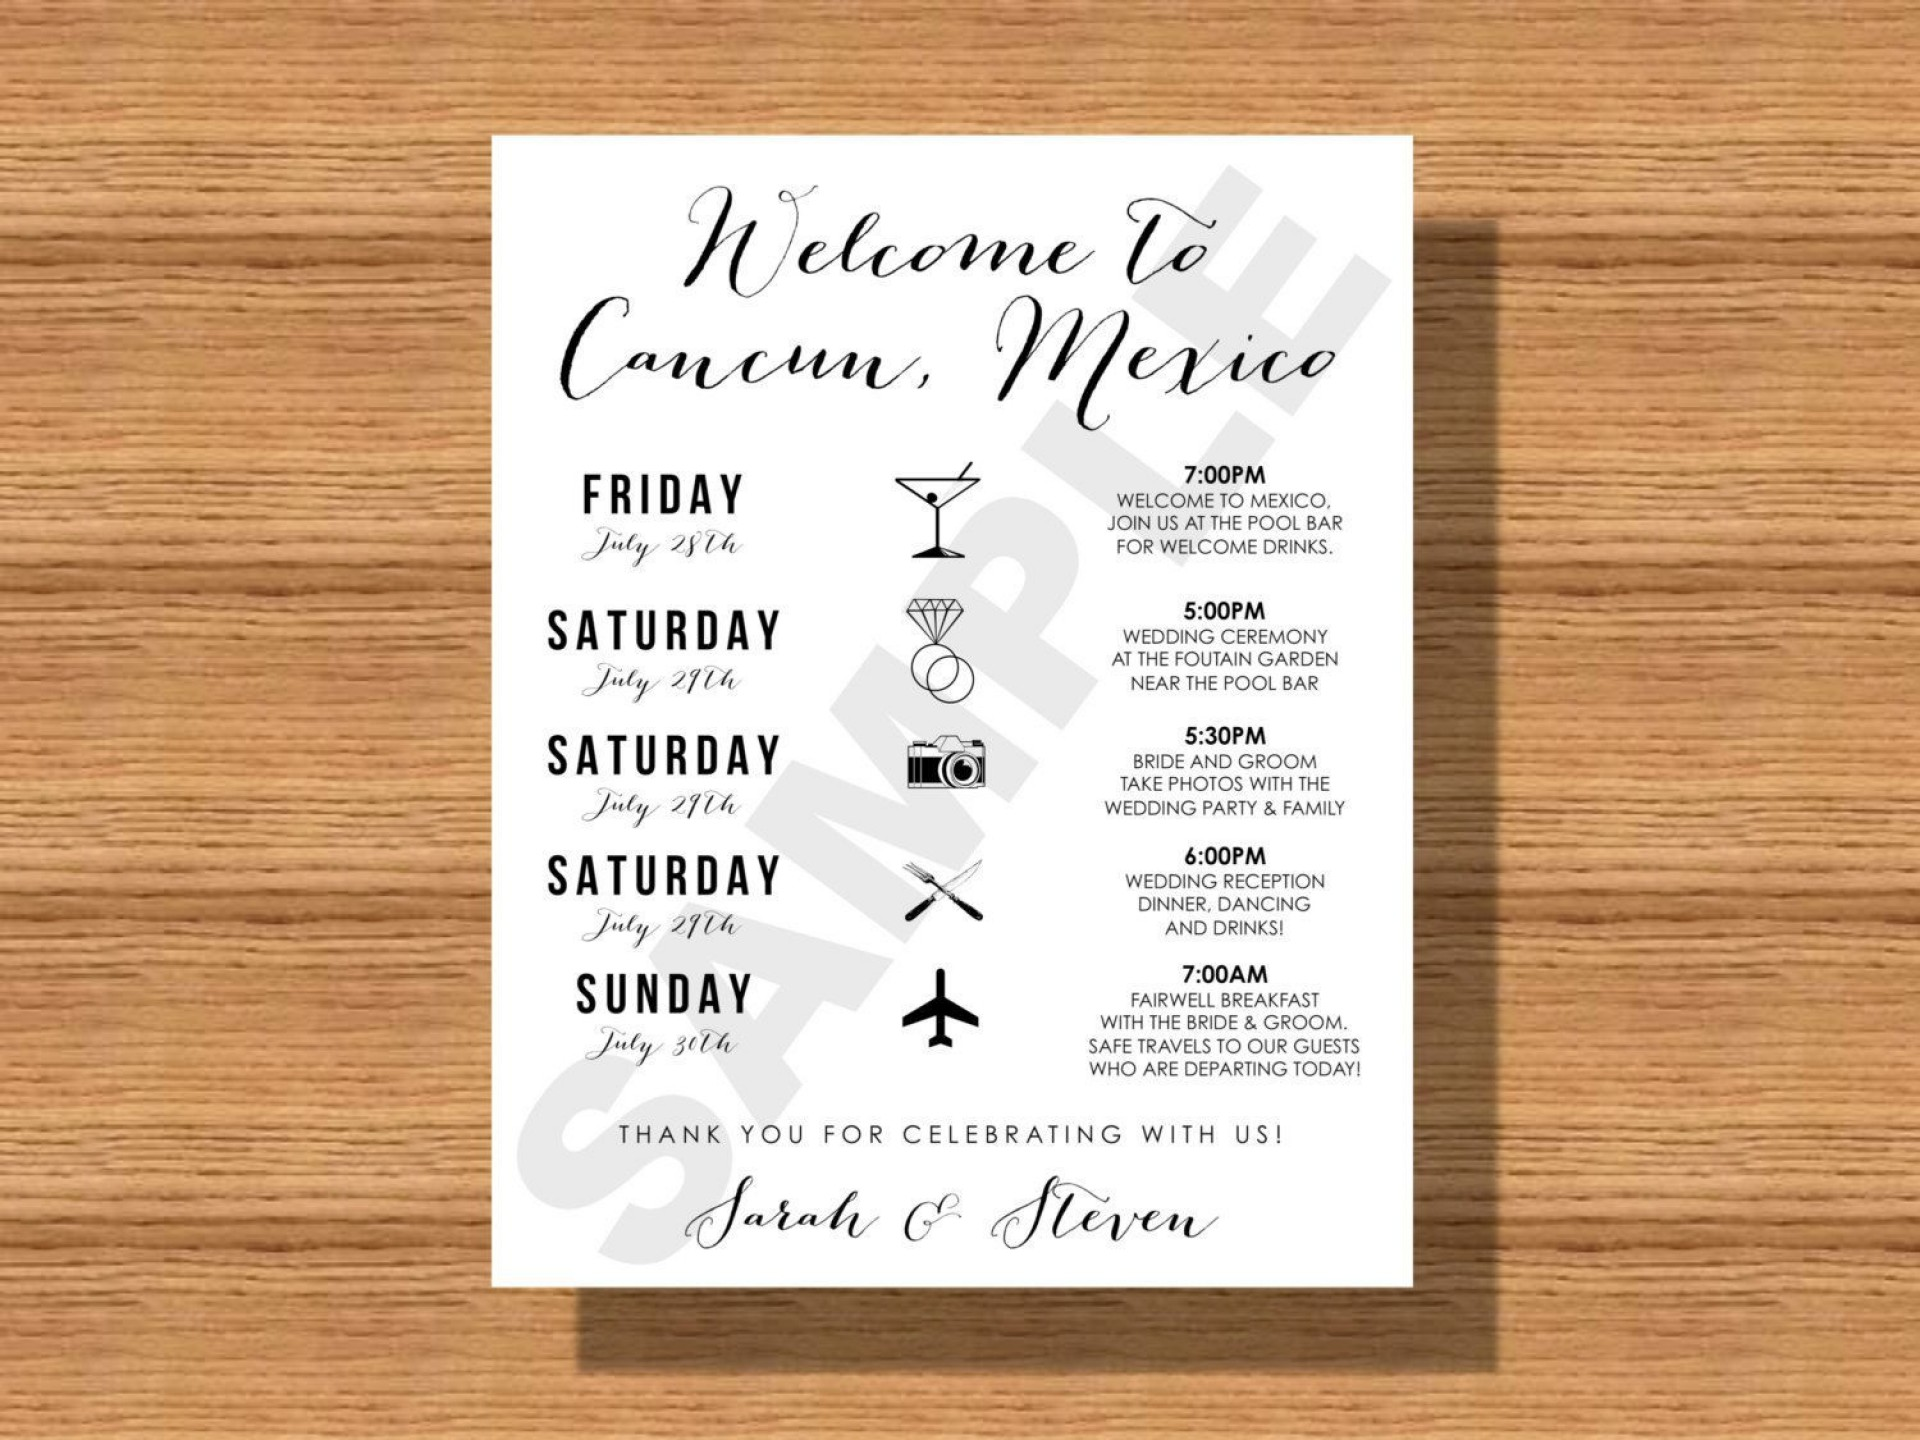 004 Stunning Destination Wedding Itinerary Template Highest Clarity  Welcome Letter And Sample Free1920